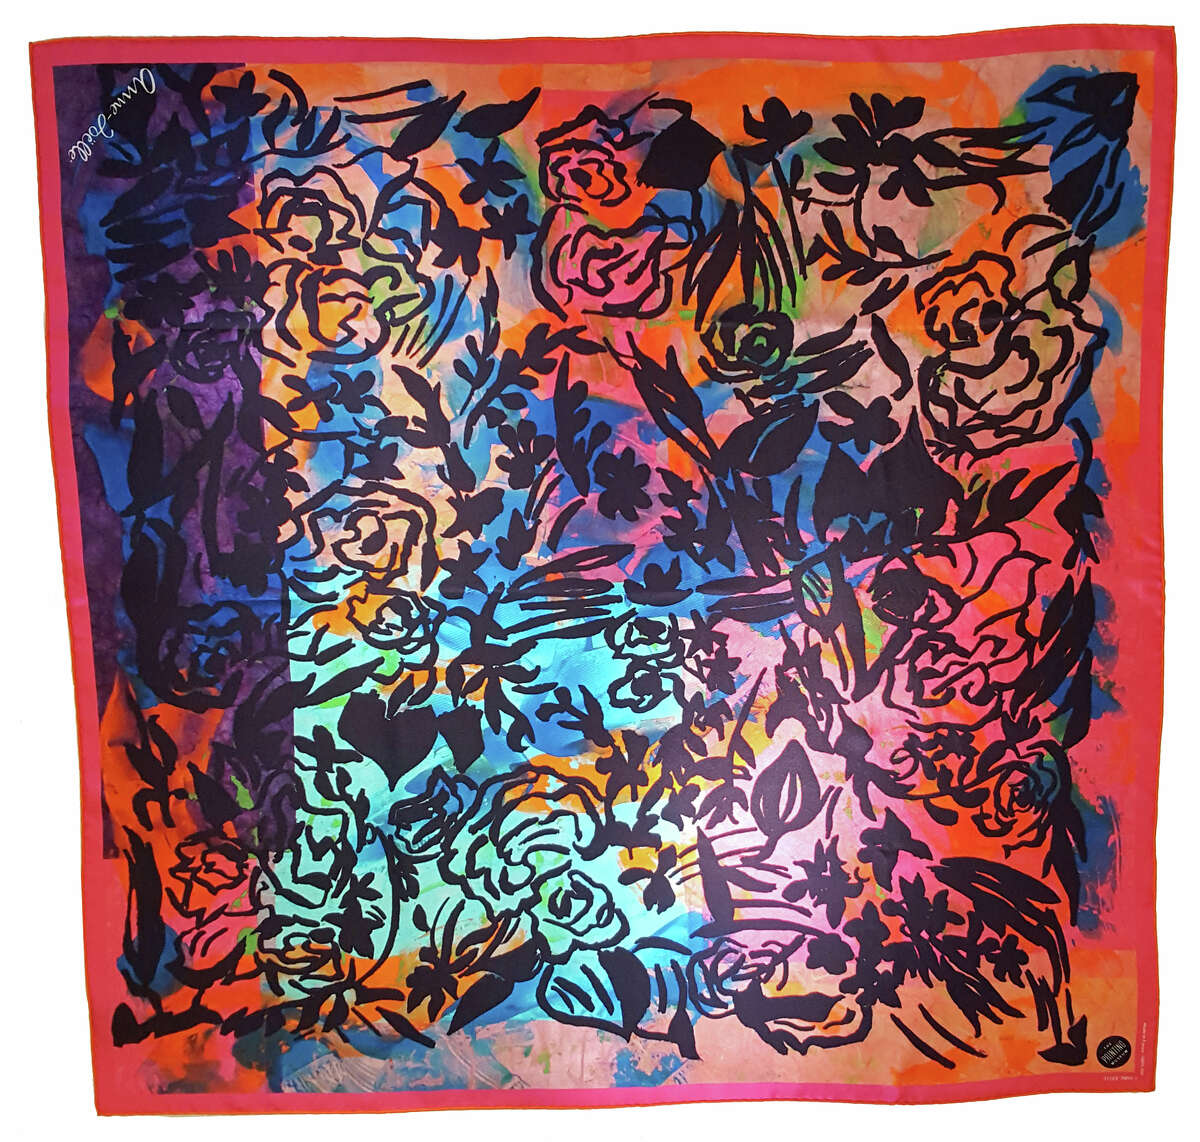 Houston artist Anne-Joelle Galley designed this scarf from a print she created at the Printing Museum with resident artist Charles Criner to benefit restoration efforts at the 35-year old institution, which is still recovering from a May 2016 fire that caused significant damage to the premises and its research library.